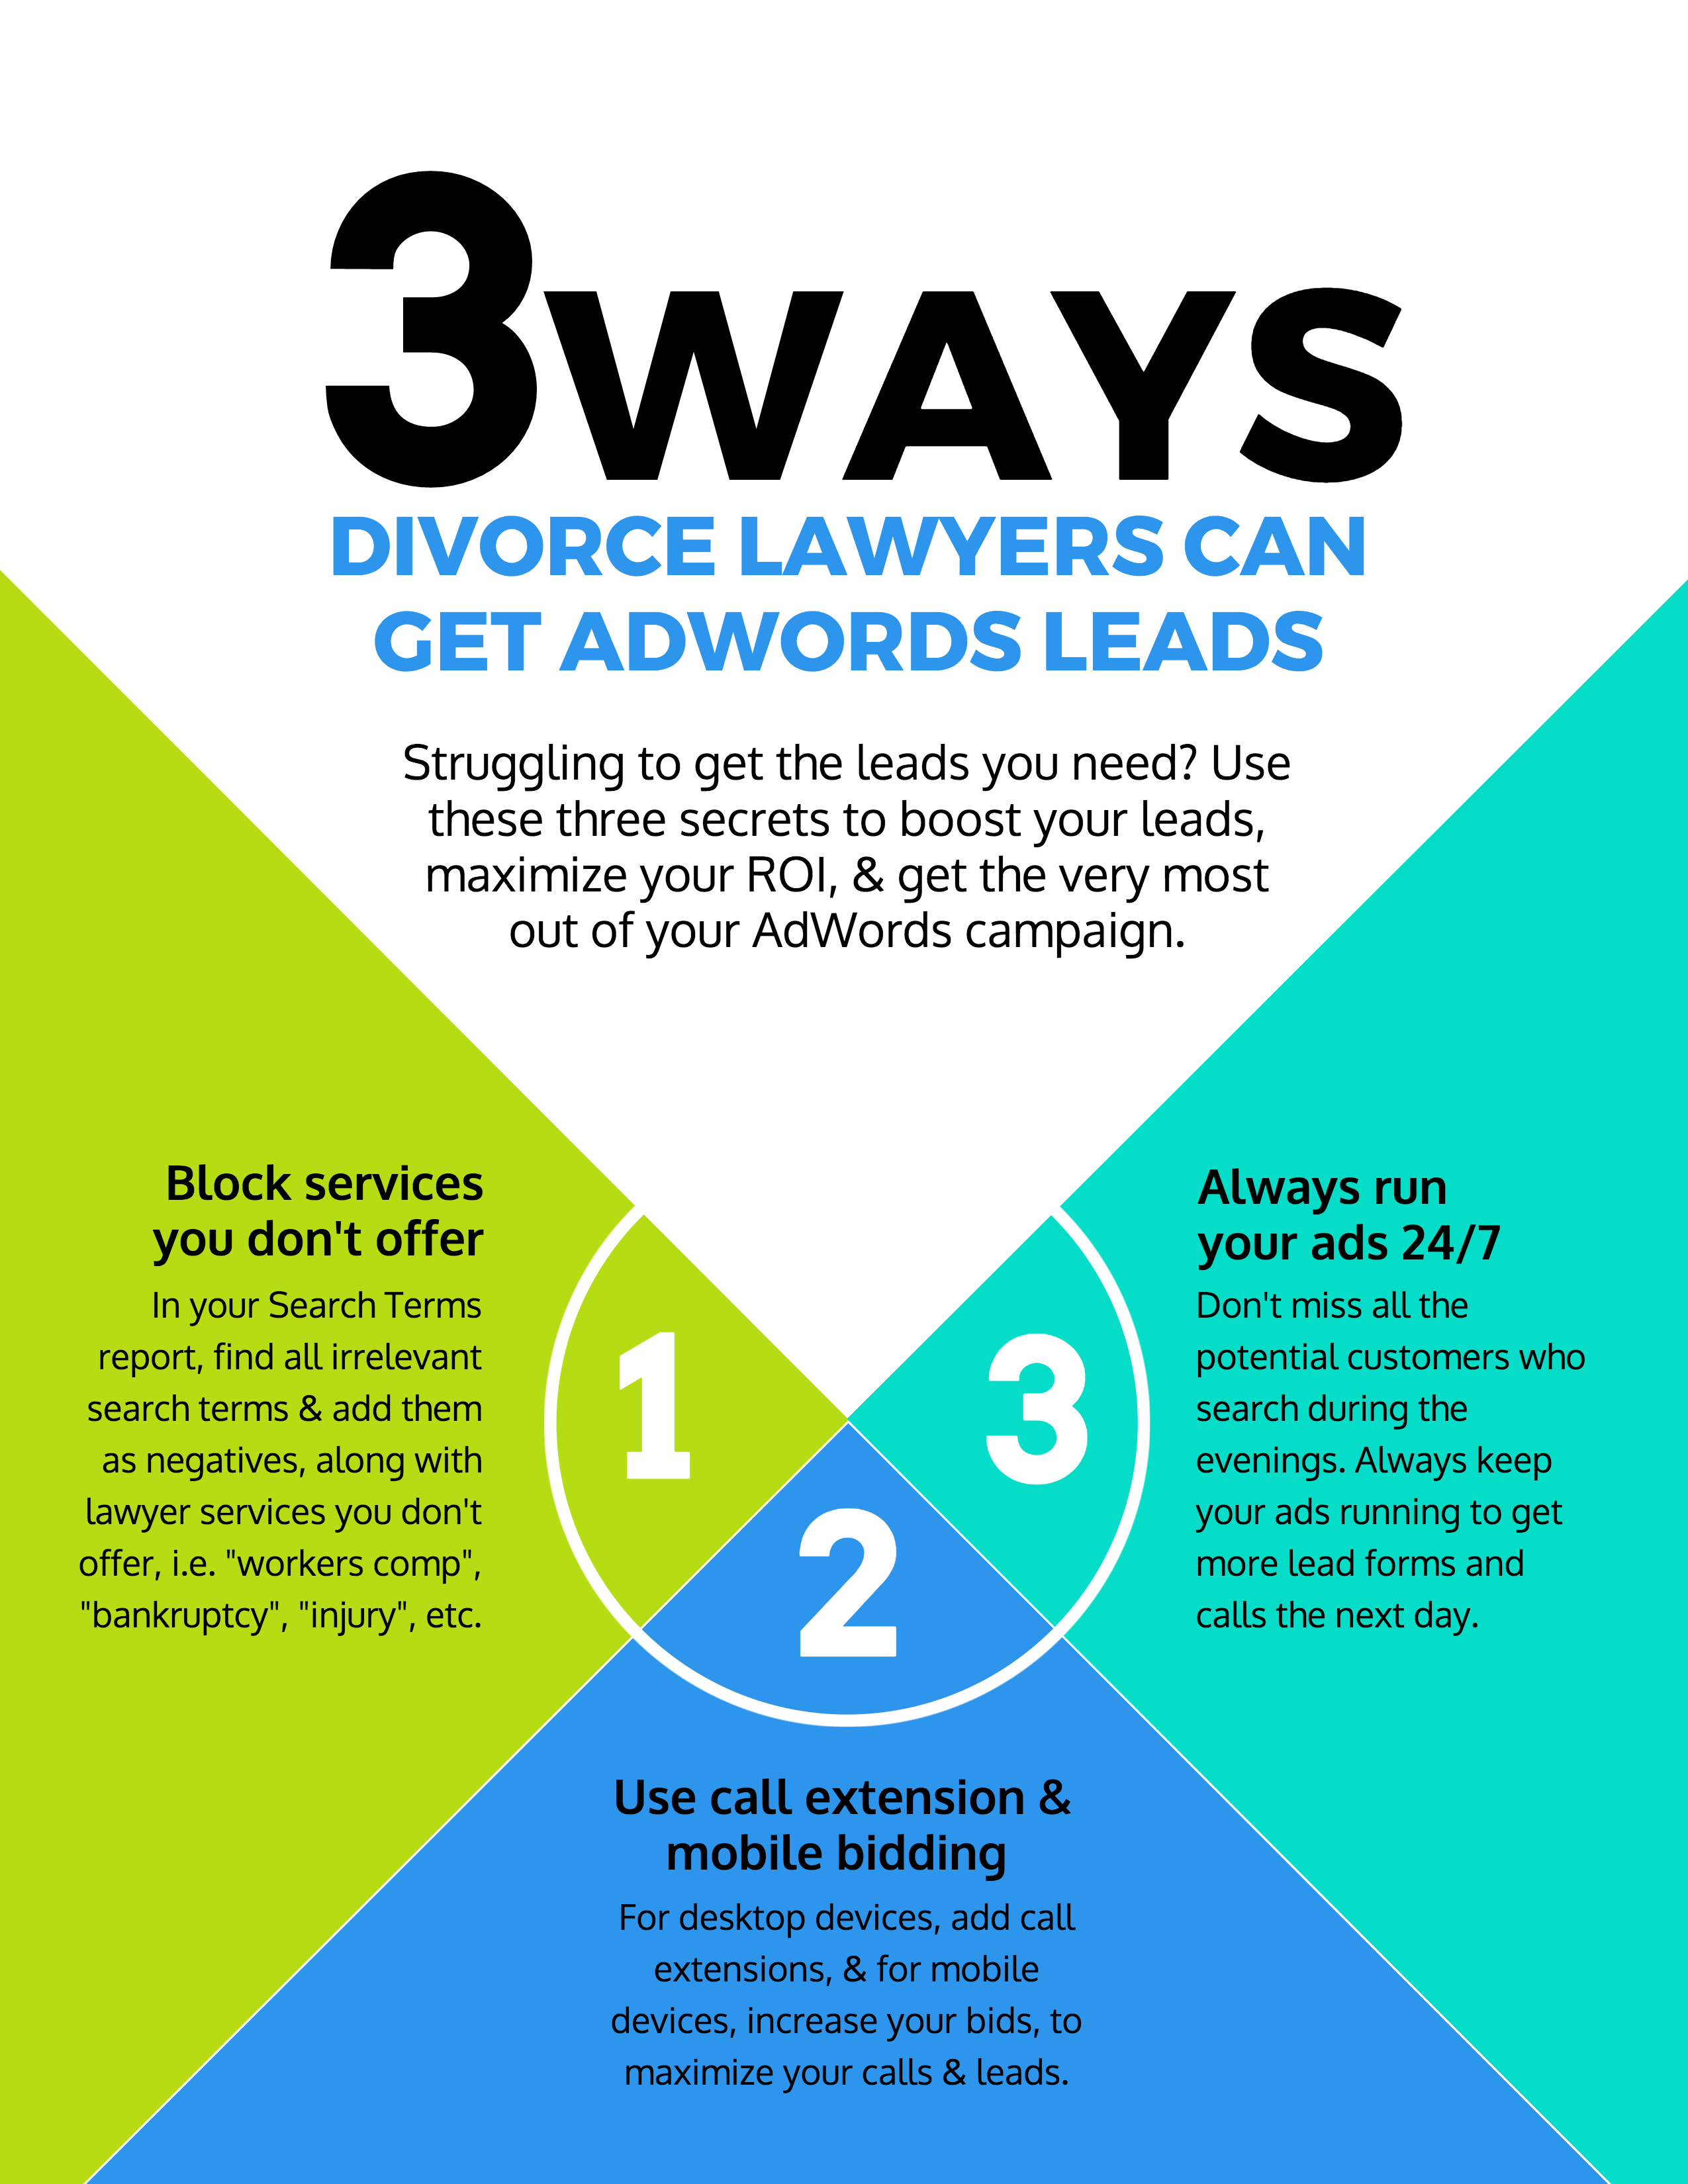 3 Ways Divorce Lawyers Can Get More AdWords Leads